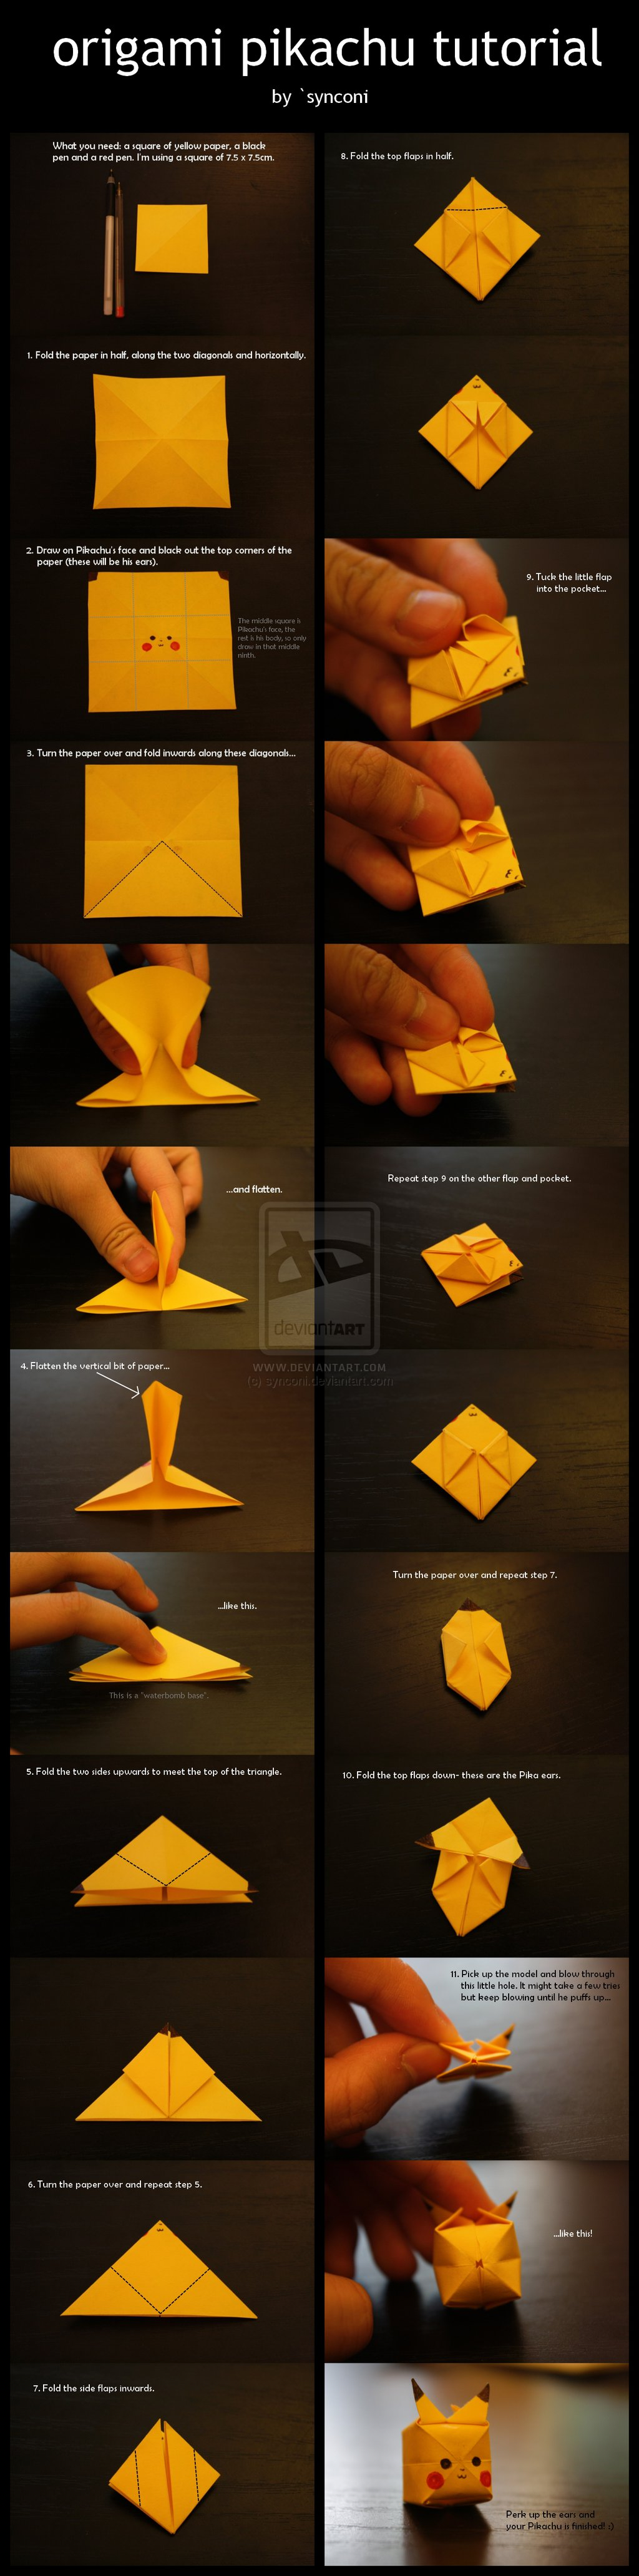 Origami Pikachu Tutorial By Synconi On DeviantART